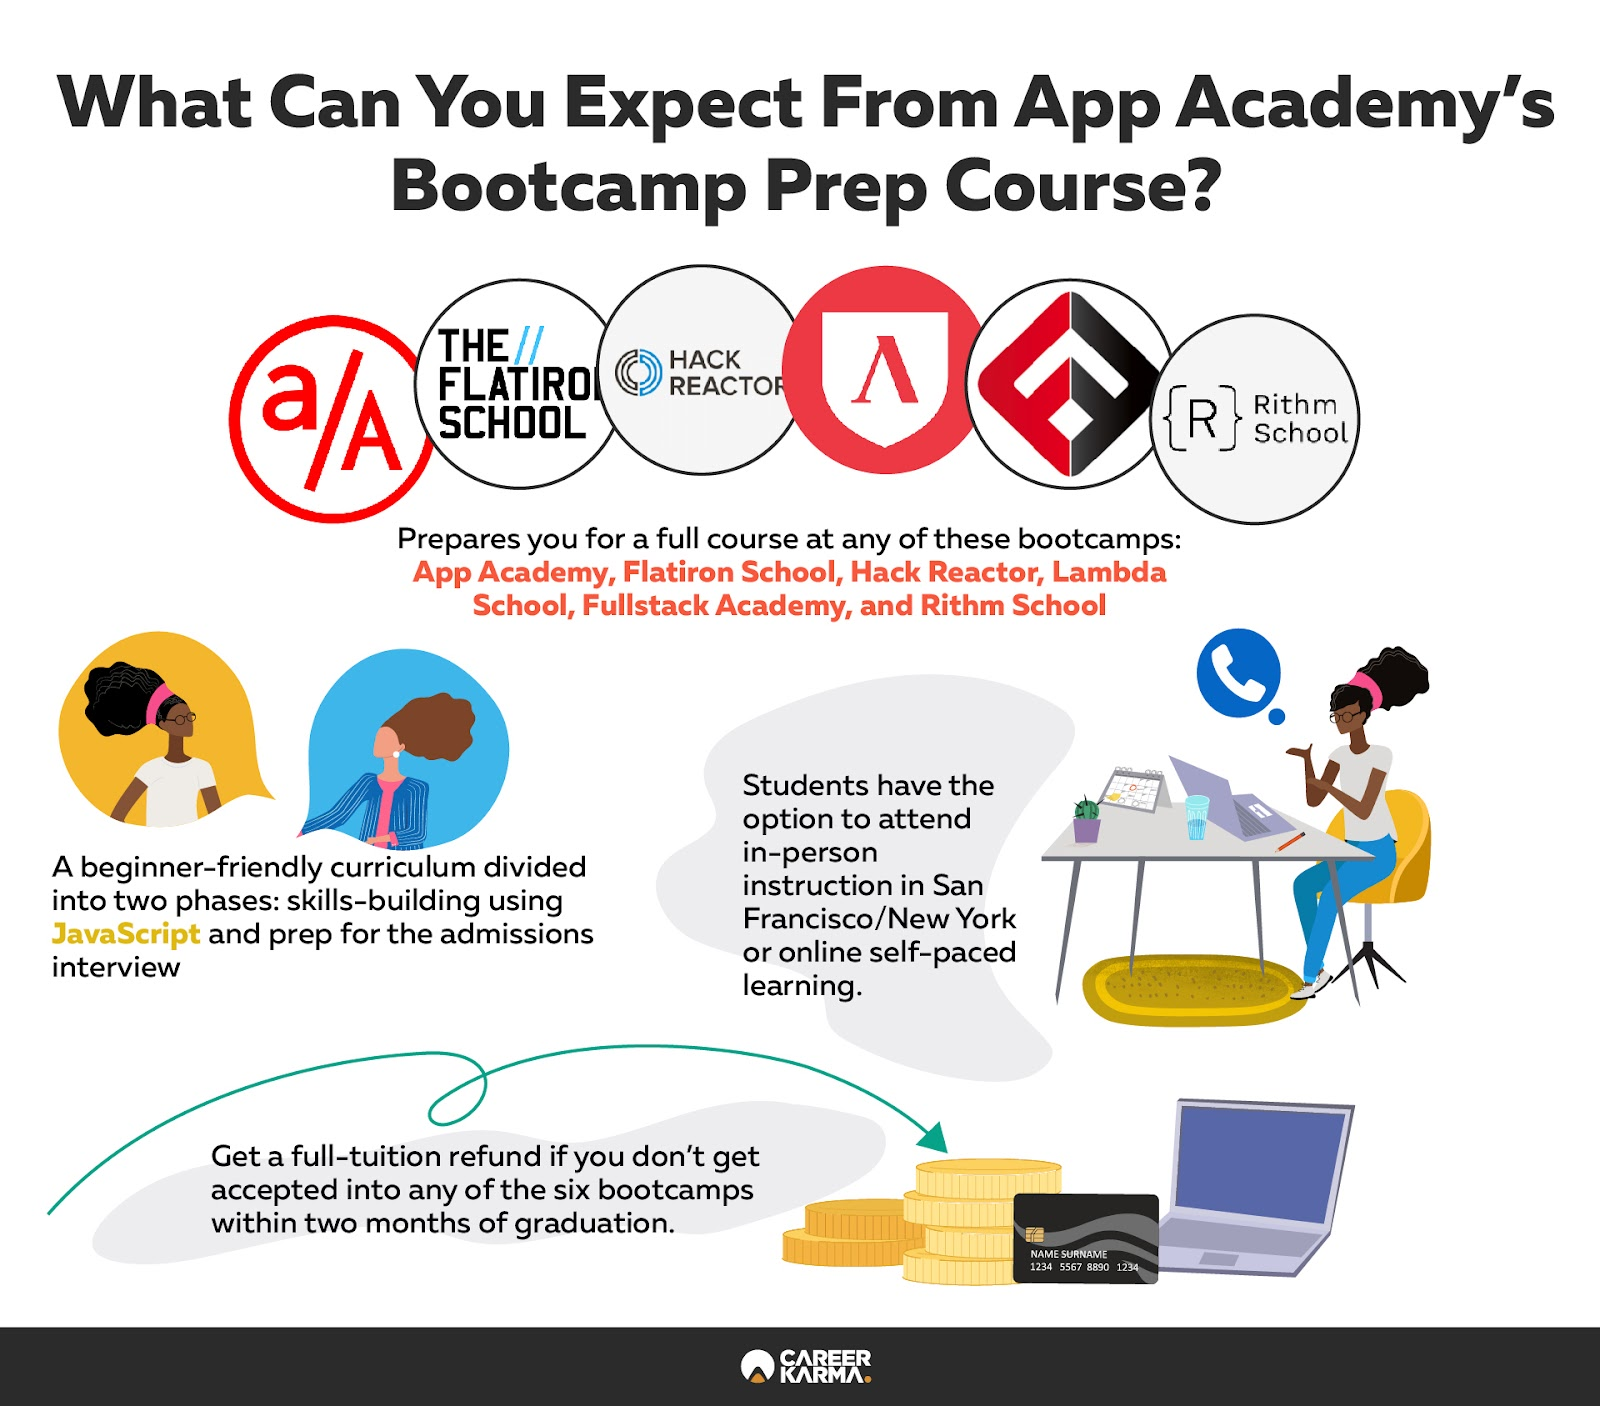 Infographic covering App Academy's prep course